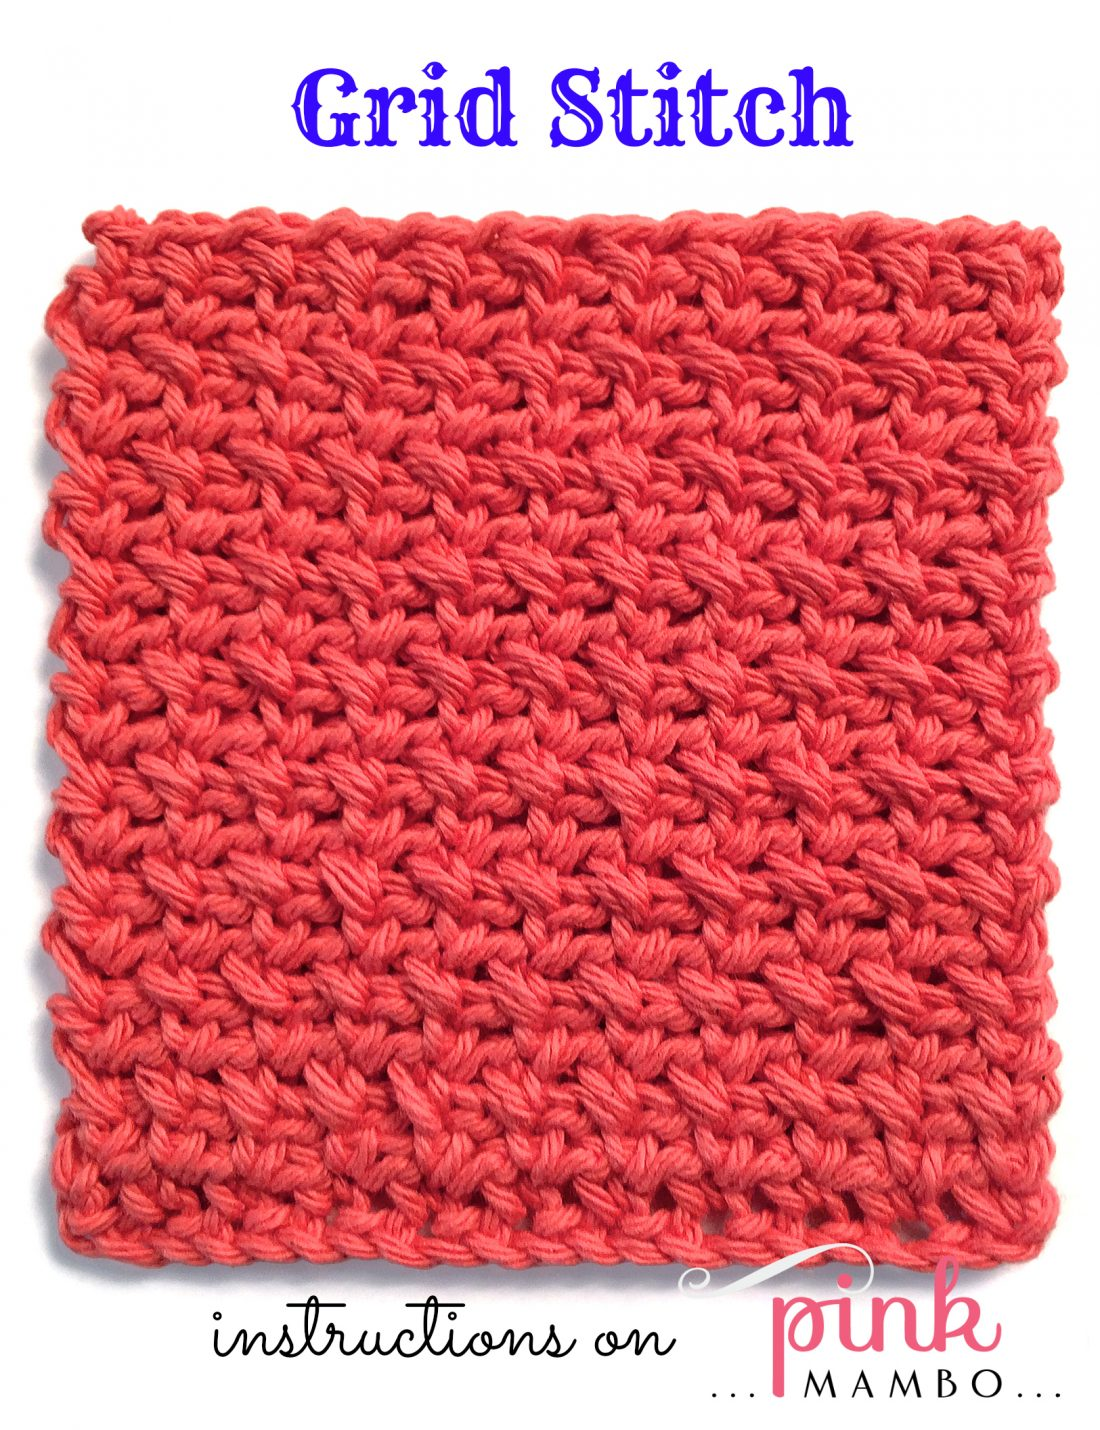 Crochet Grid Stitch Pattern